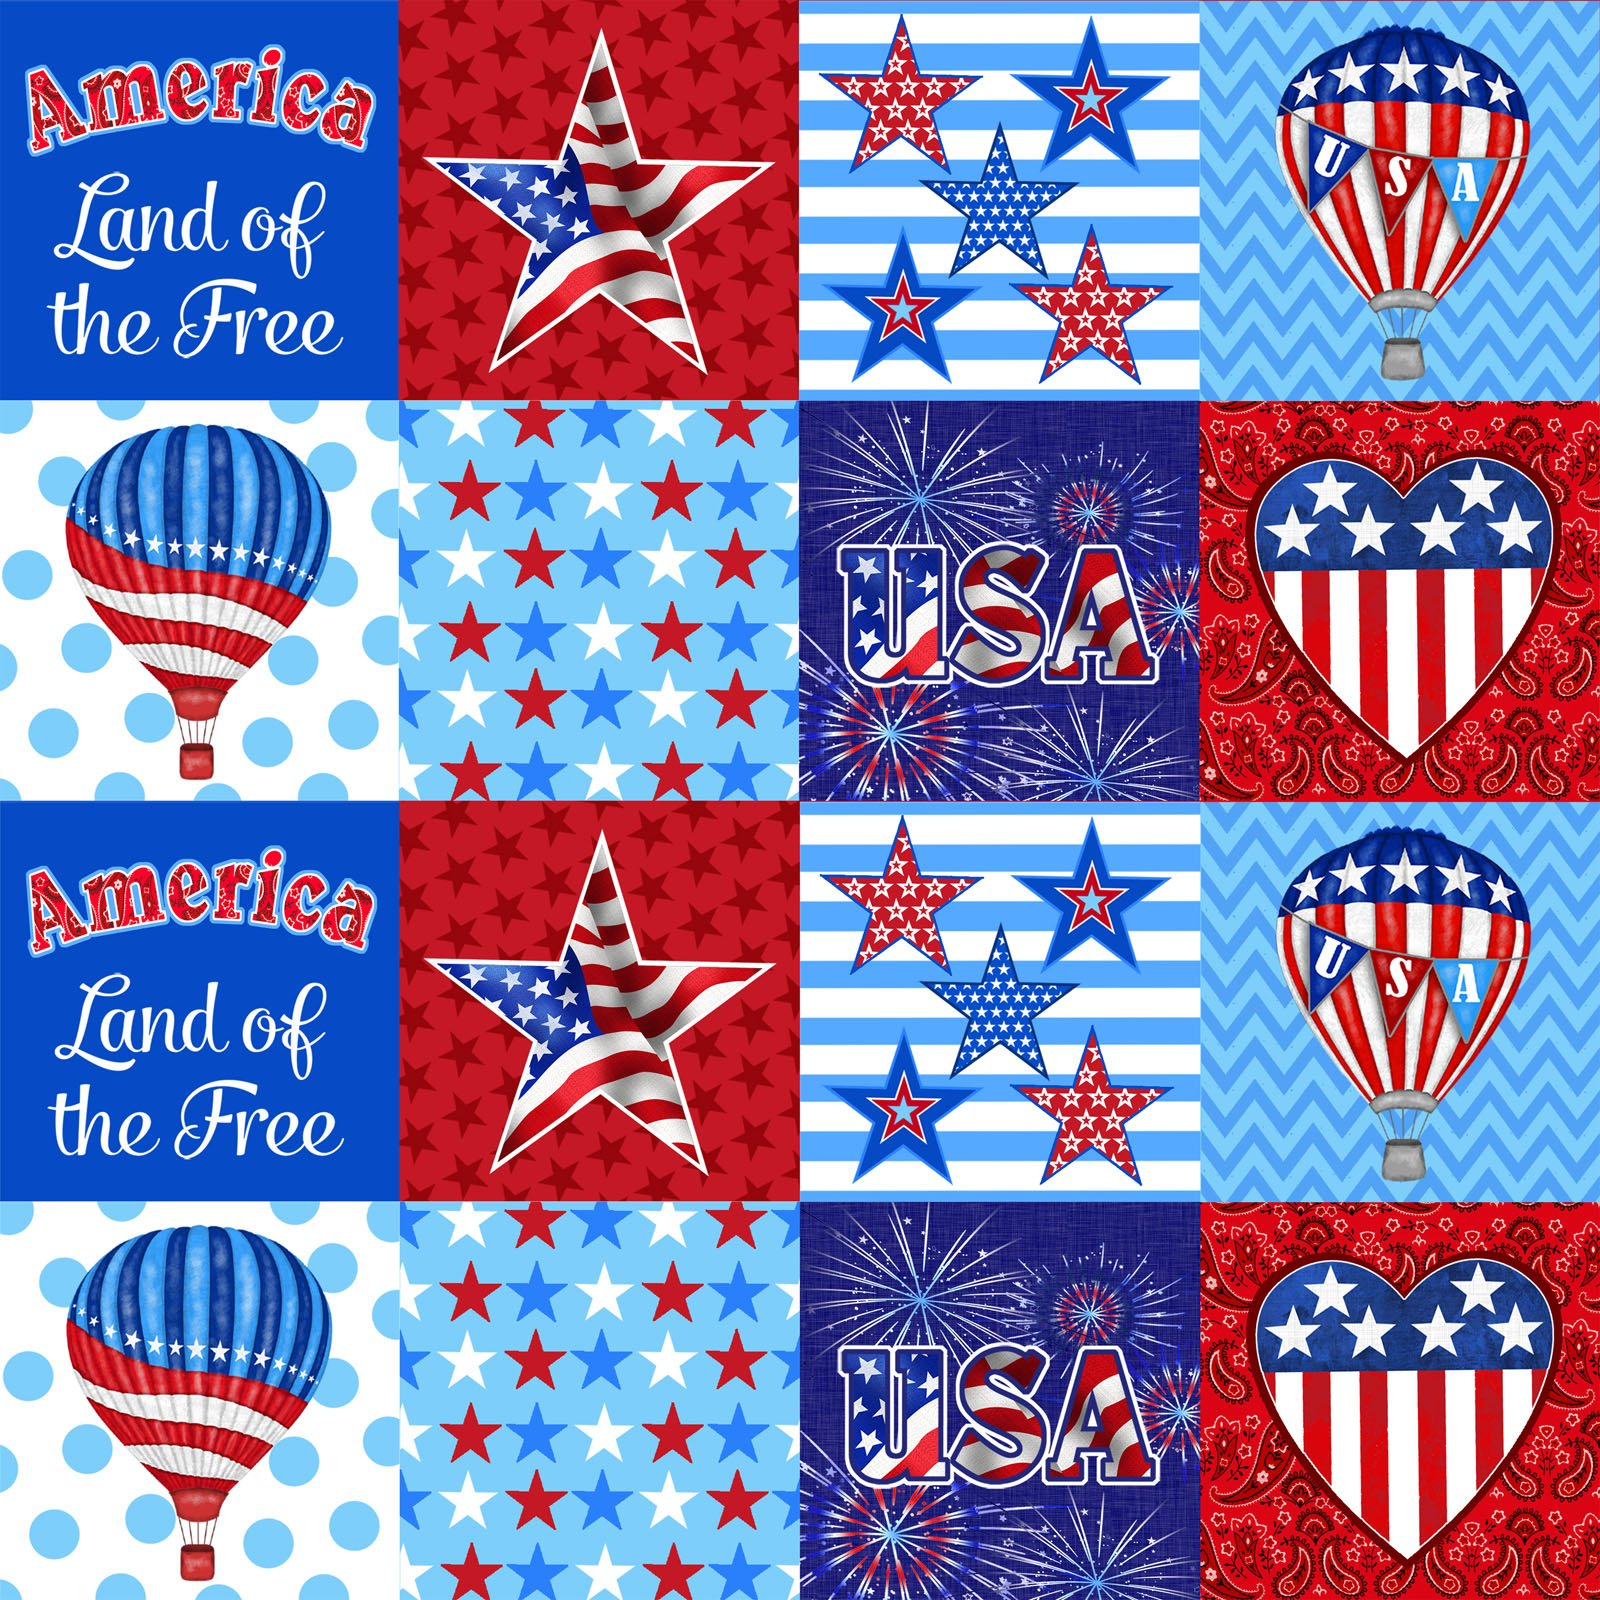 America Home of the Brave  4621-87